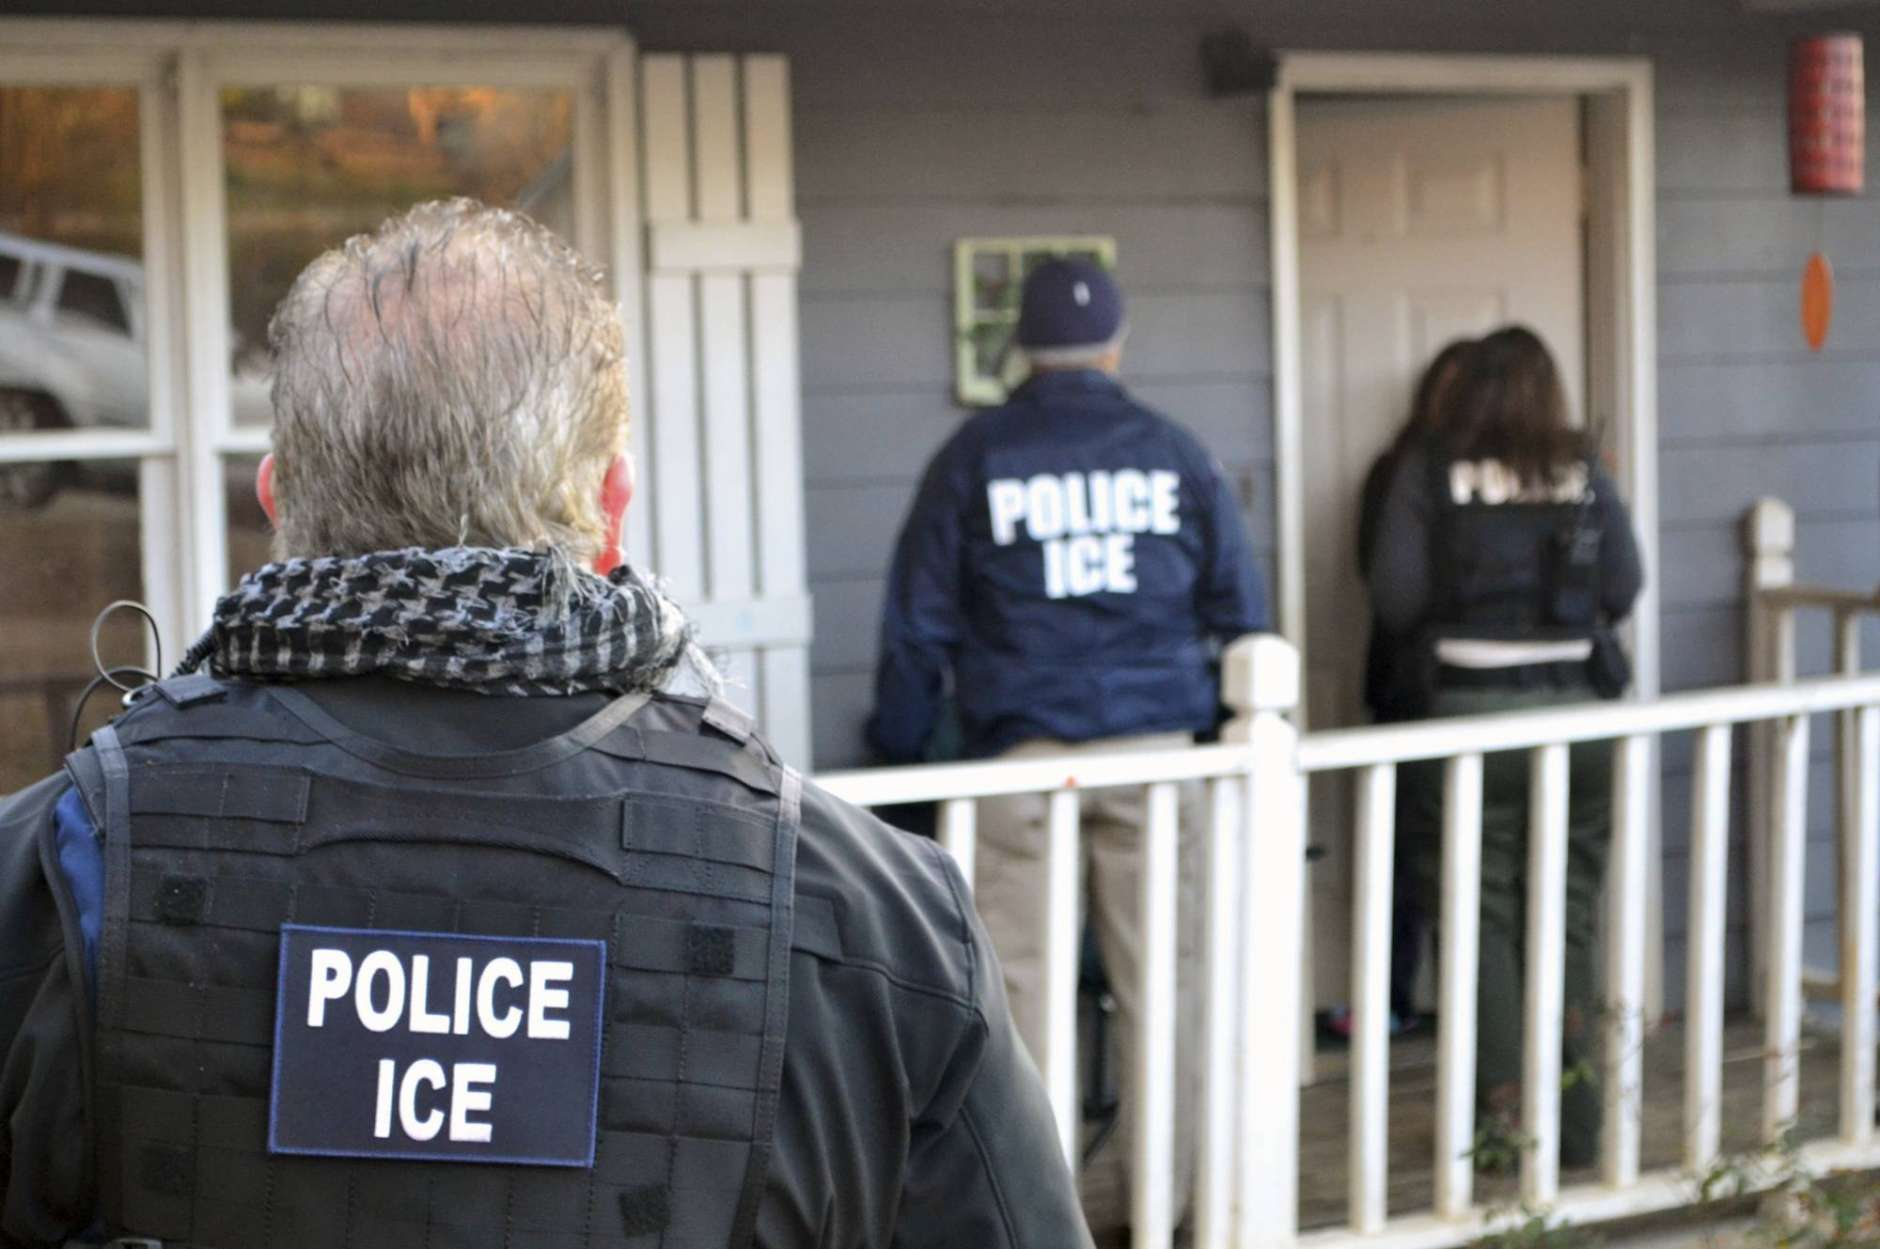 FILE — In this Feb. 9, 2017, photo provided U.S. Immigration and Customs Enforcement, ICE agents at a home in Atlanta, during a targeted enforcement operation aimed at immigration fugitives, re-entrants and at-large criminal aliens. (Bryan Cox/ICE via AP)